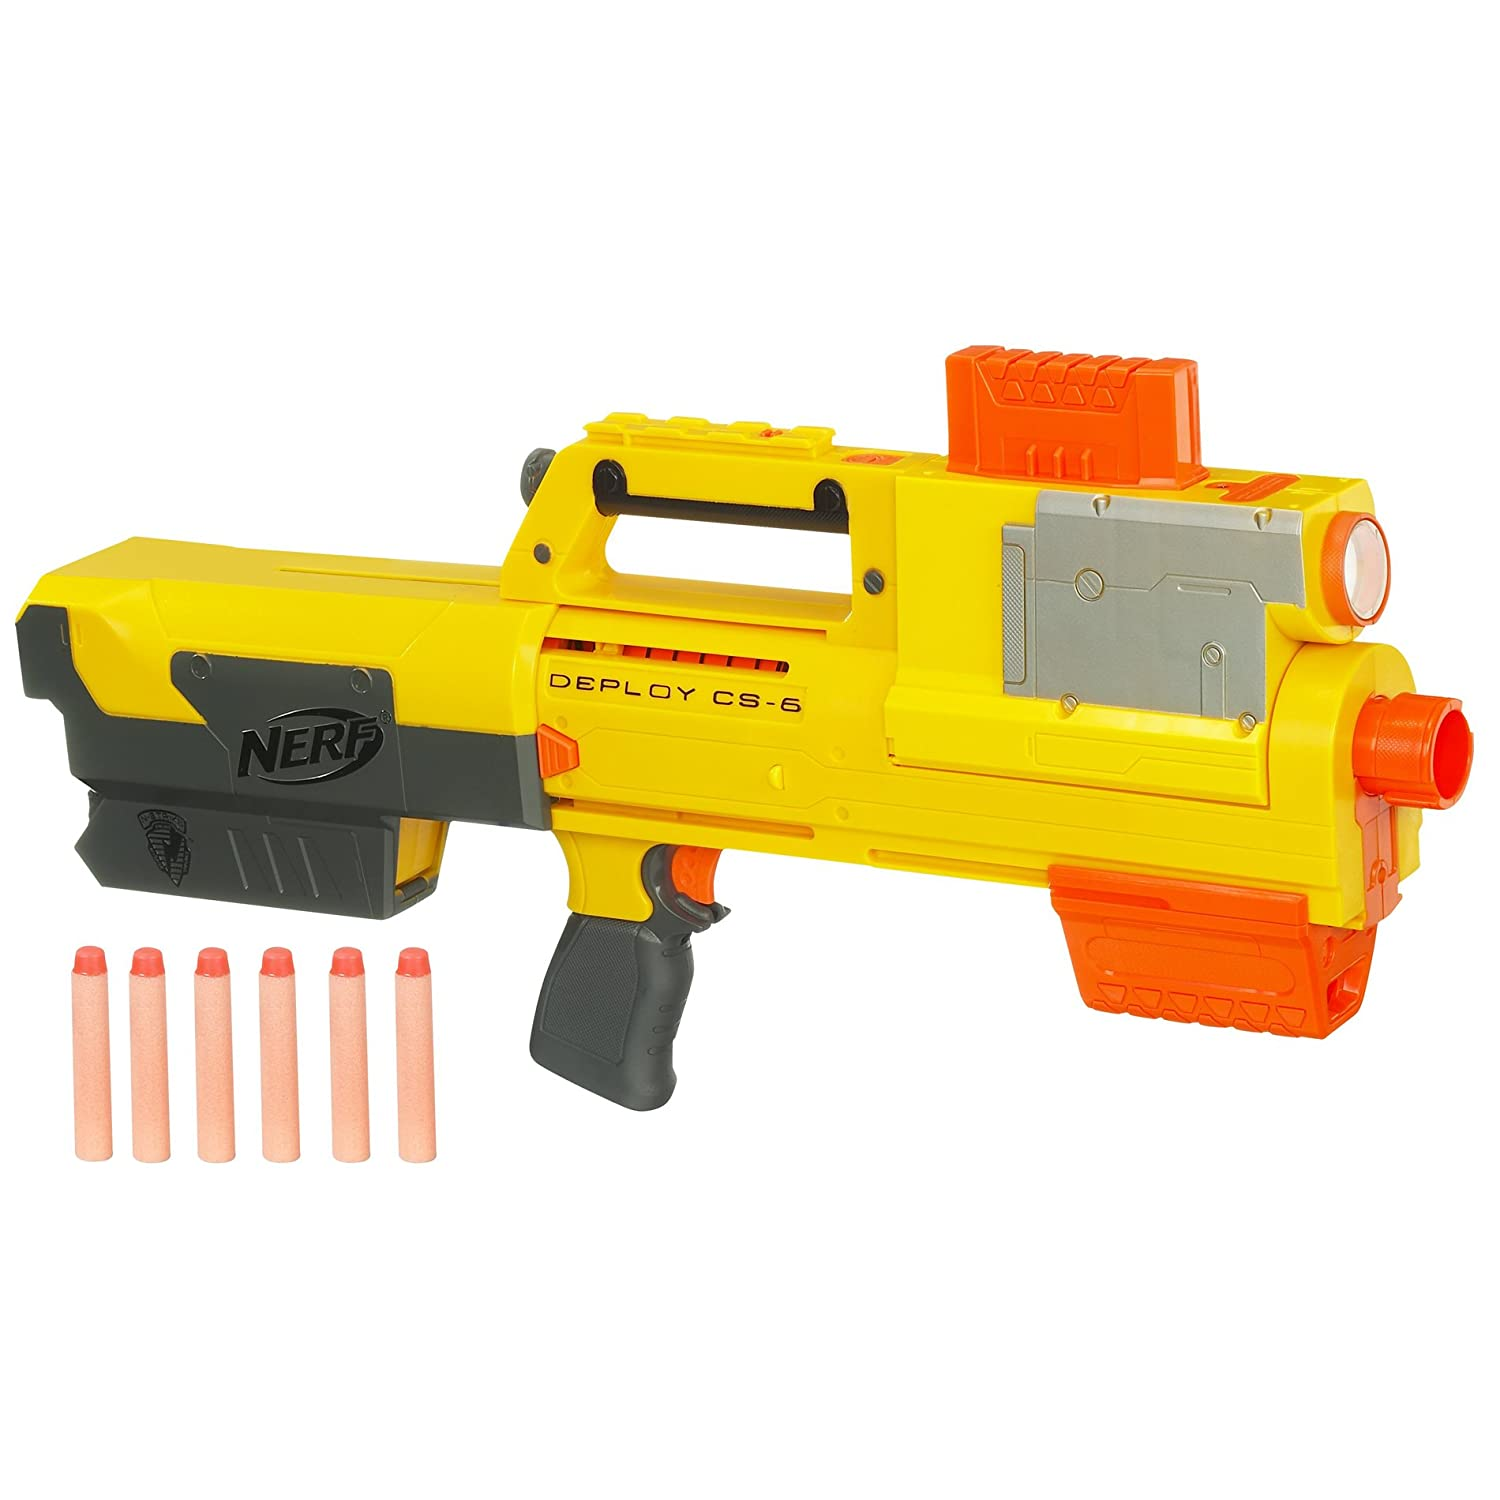 Amazon.com: Nerf N-Strike Deploy CS-6 Dart Blaster (Discontinued by  manufacturer): Toys & Games